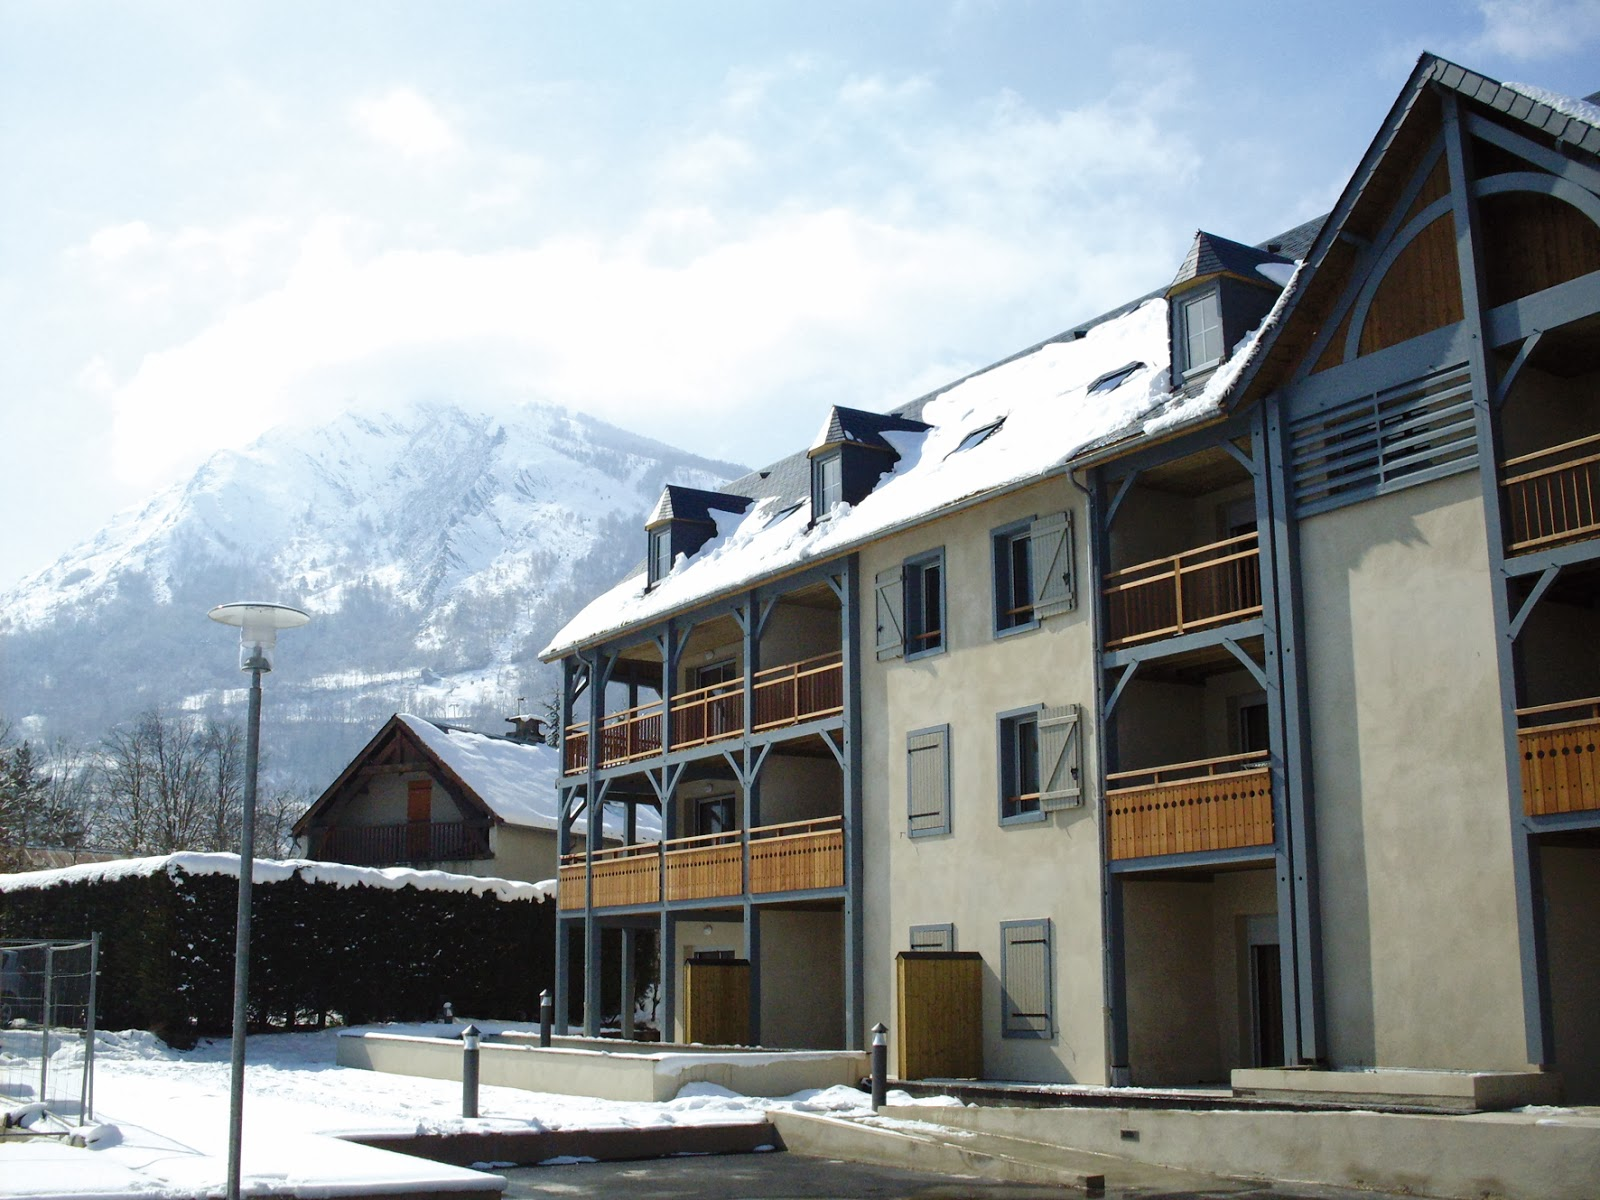 Self catered ski accommodation in Le Clos Saint-Hilaire, Saint Lary